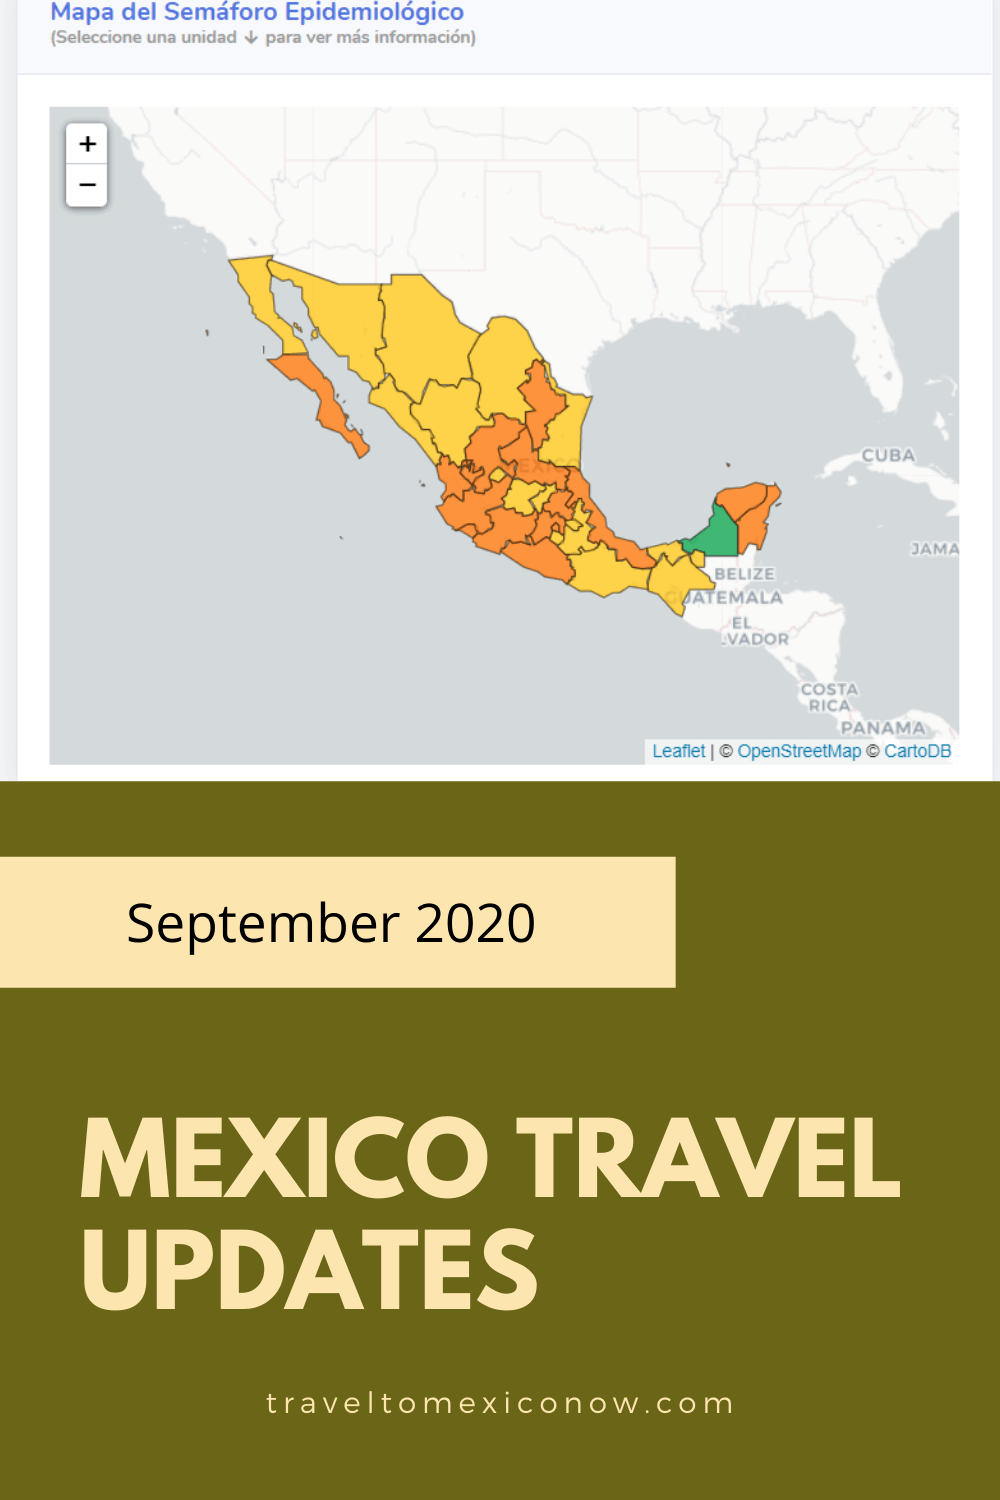 Mexico travel updates September 2020